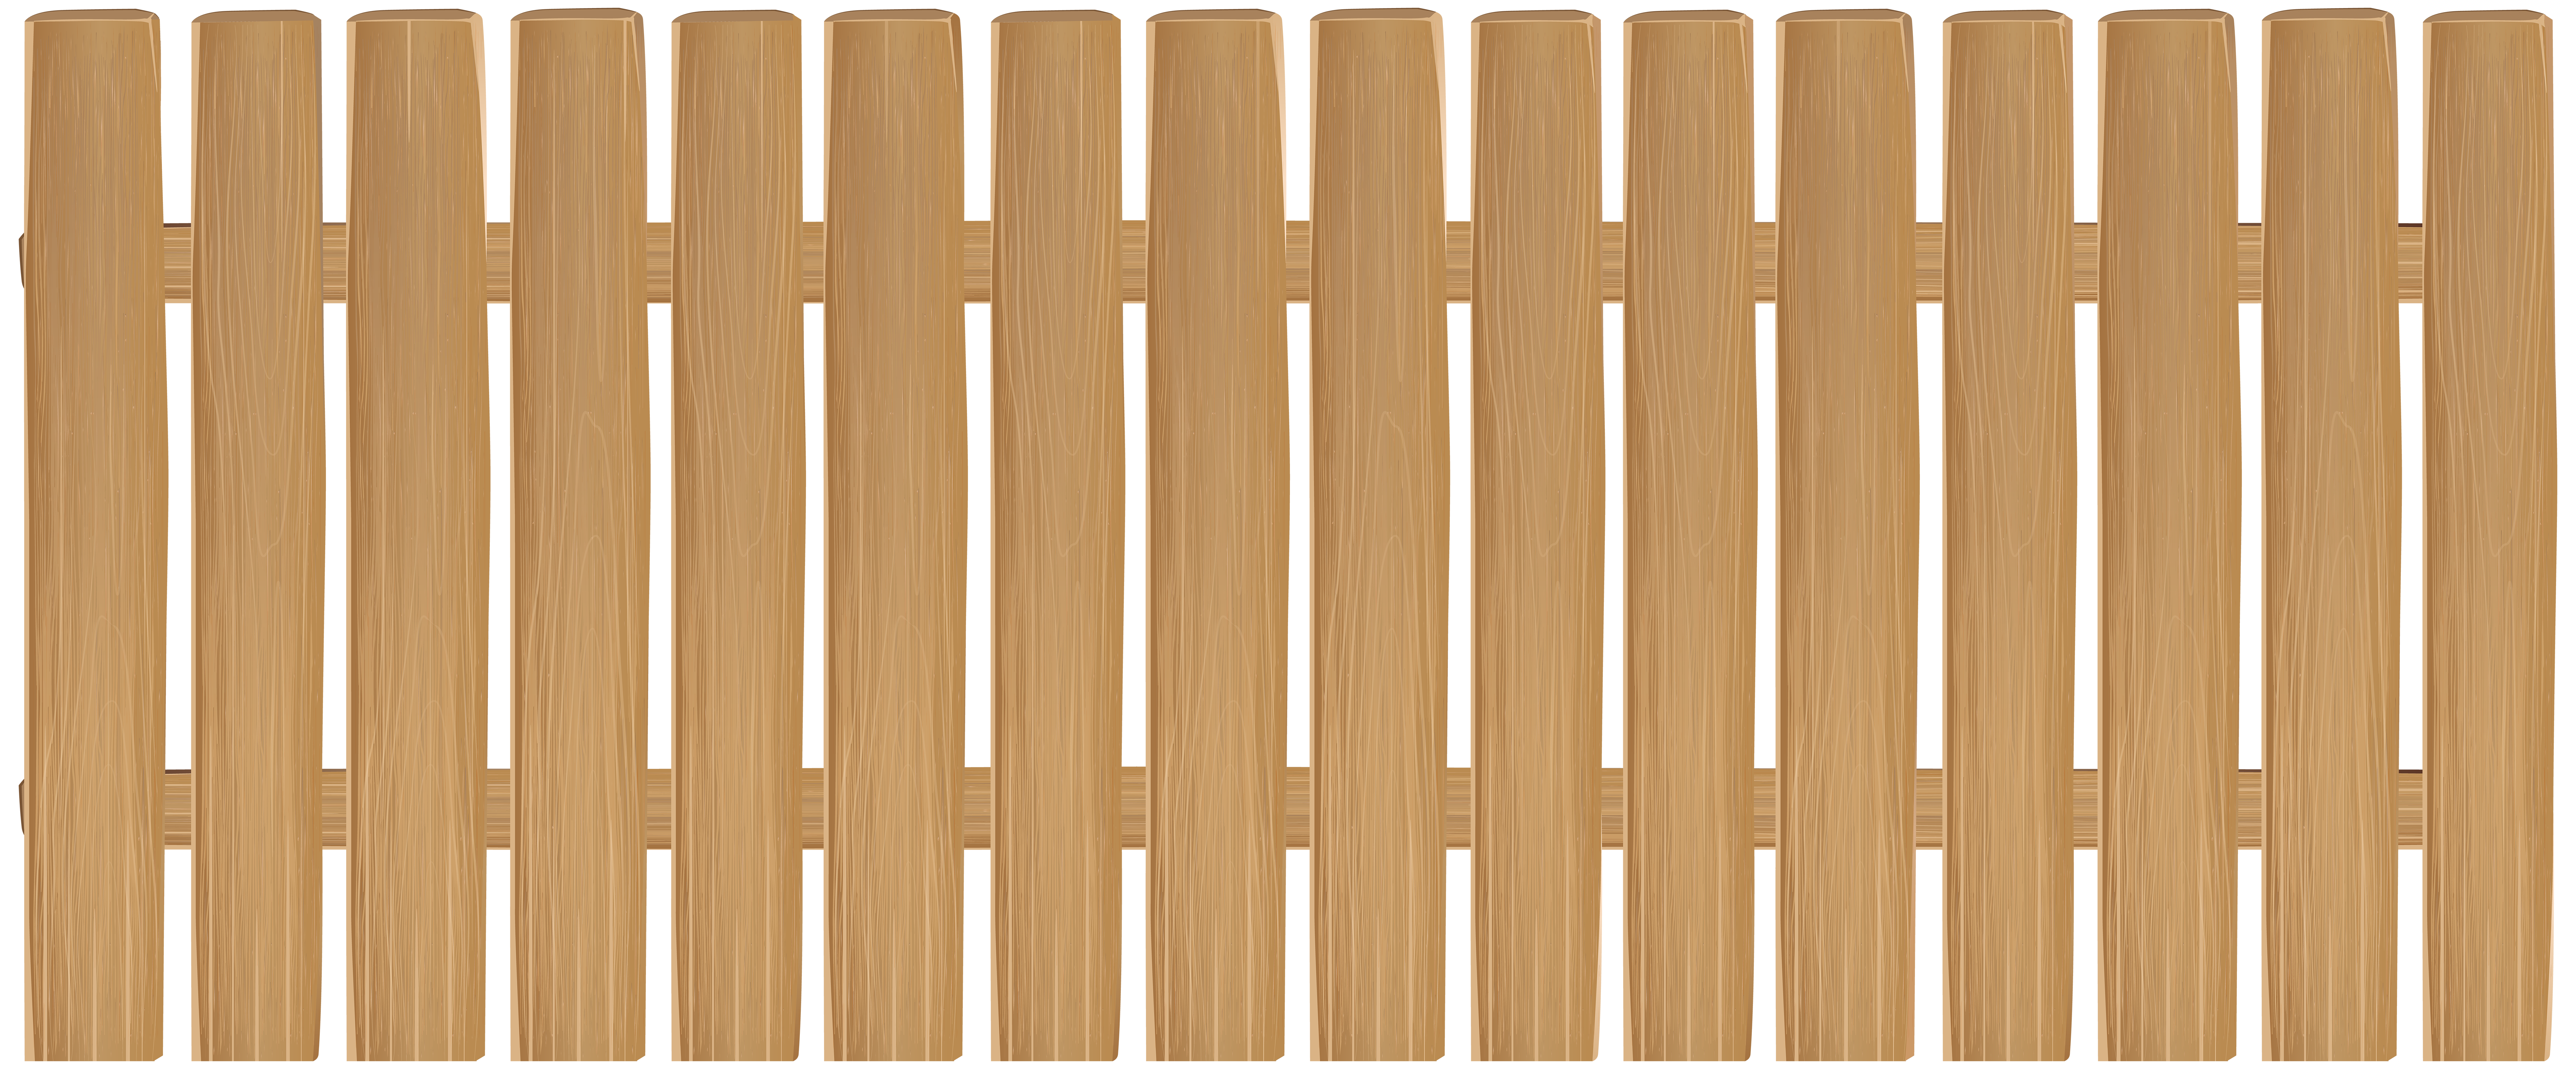 Clipart rainbow fence. Wooden clip art png